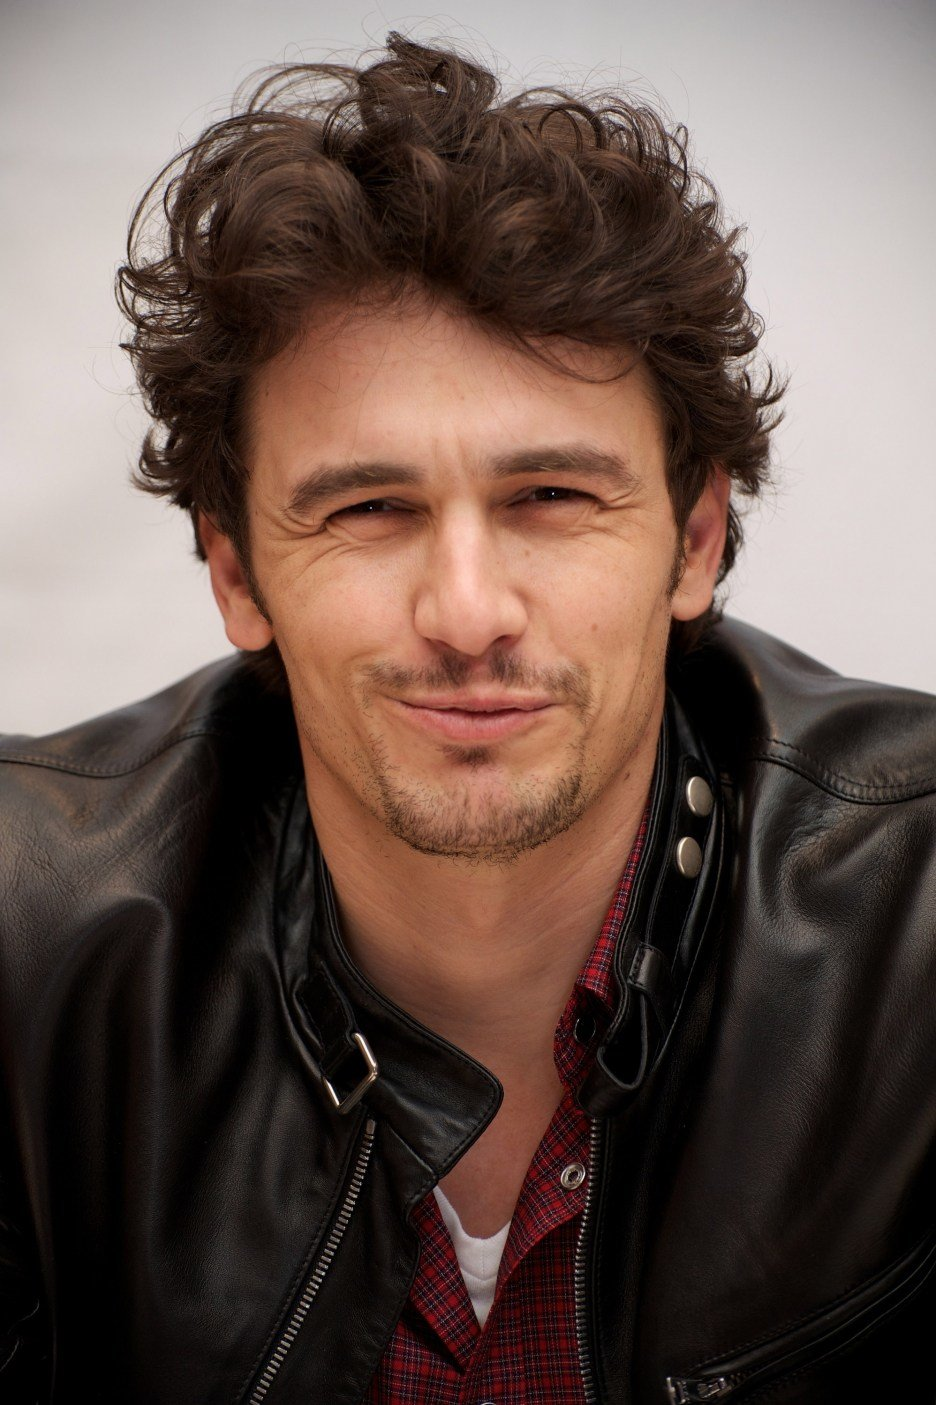 The Best James Franco Hairstyle Malehairadvice Pictures